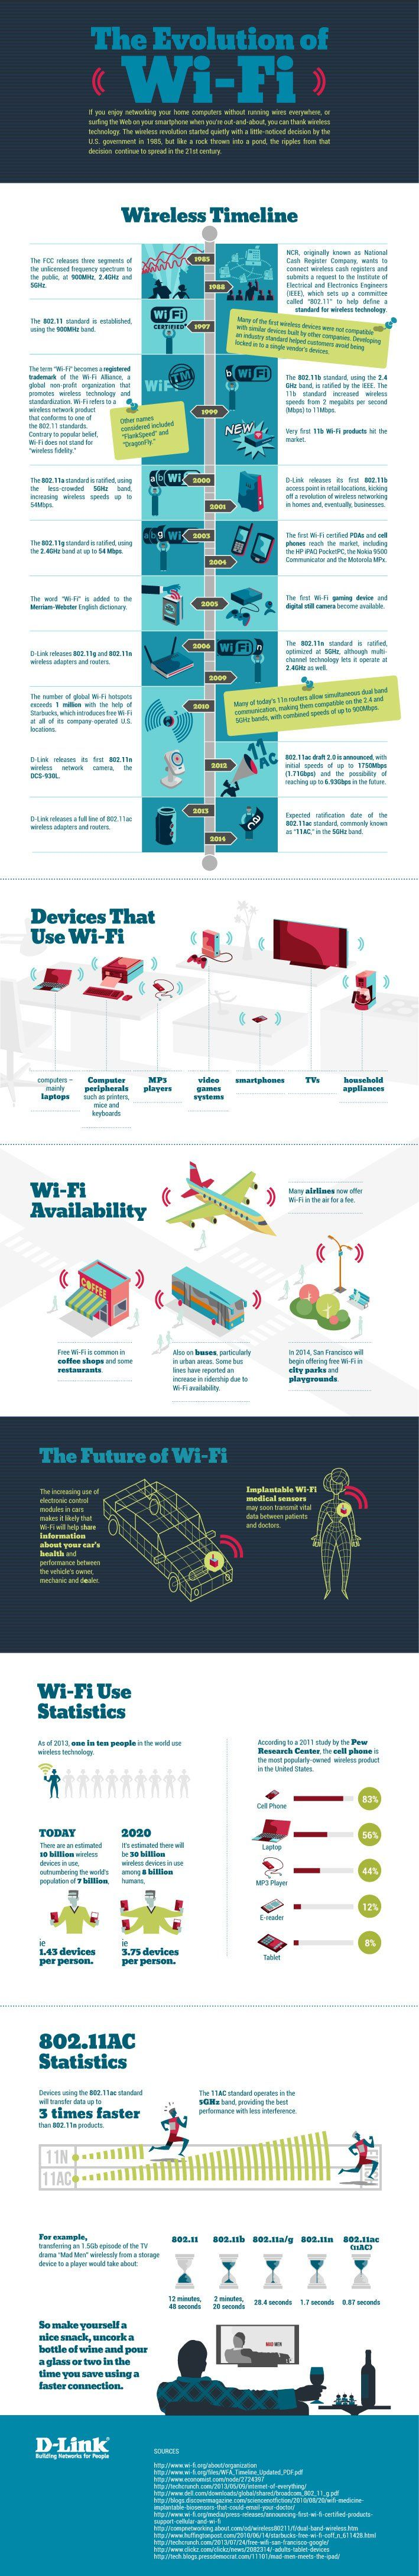 The evolution of WiFi #infografia #infographic #internet